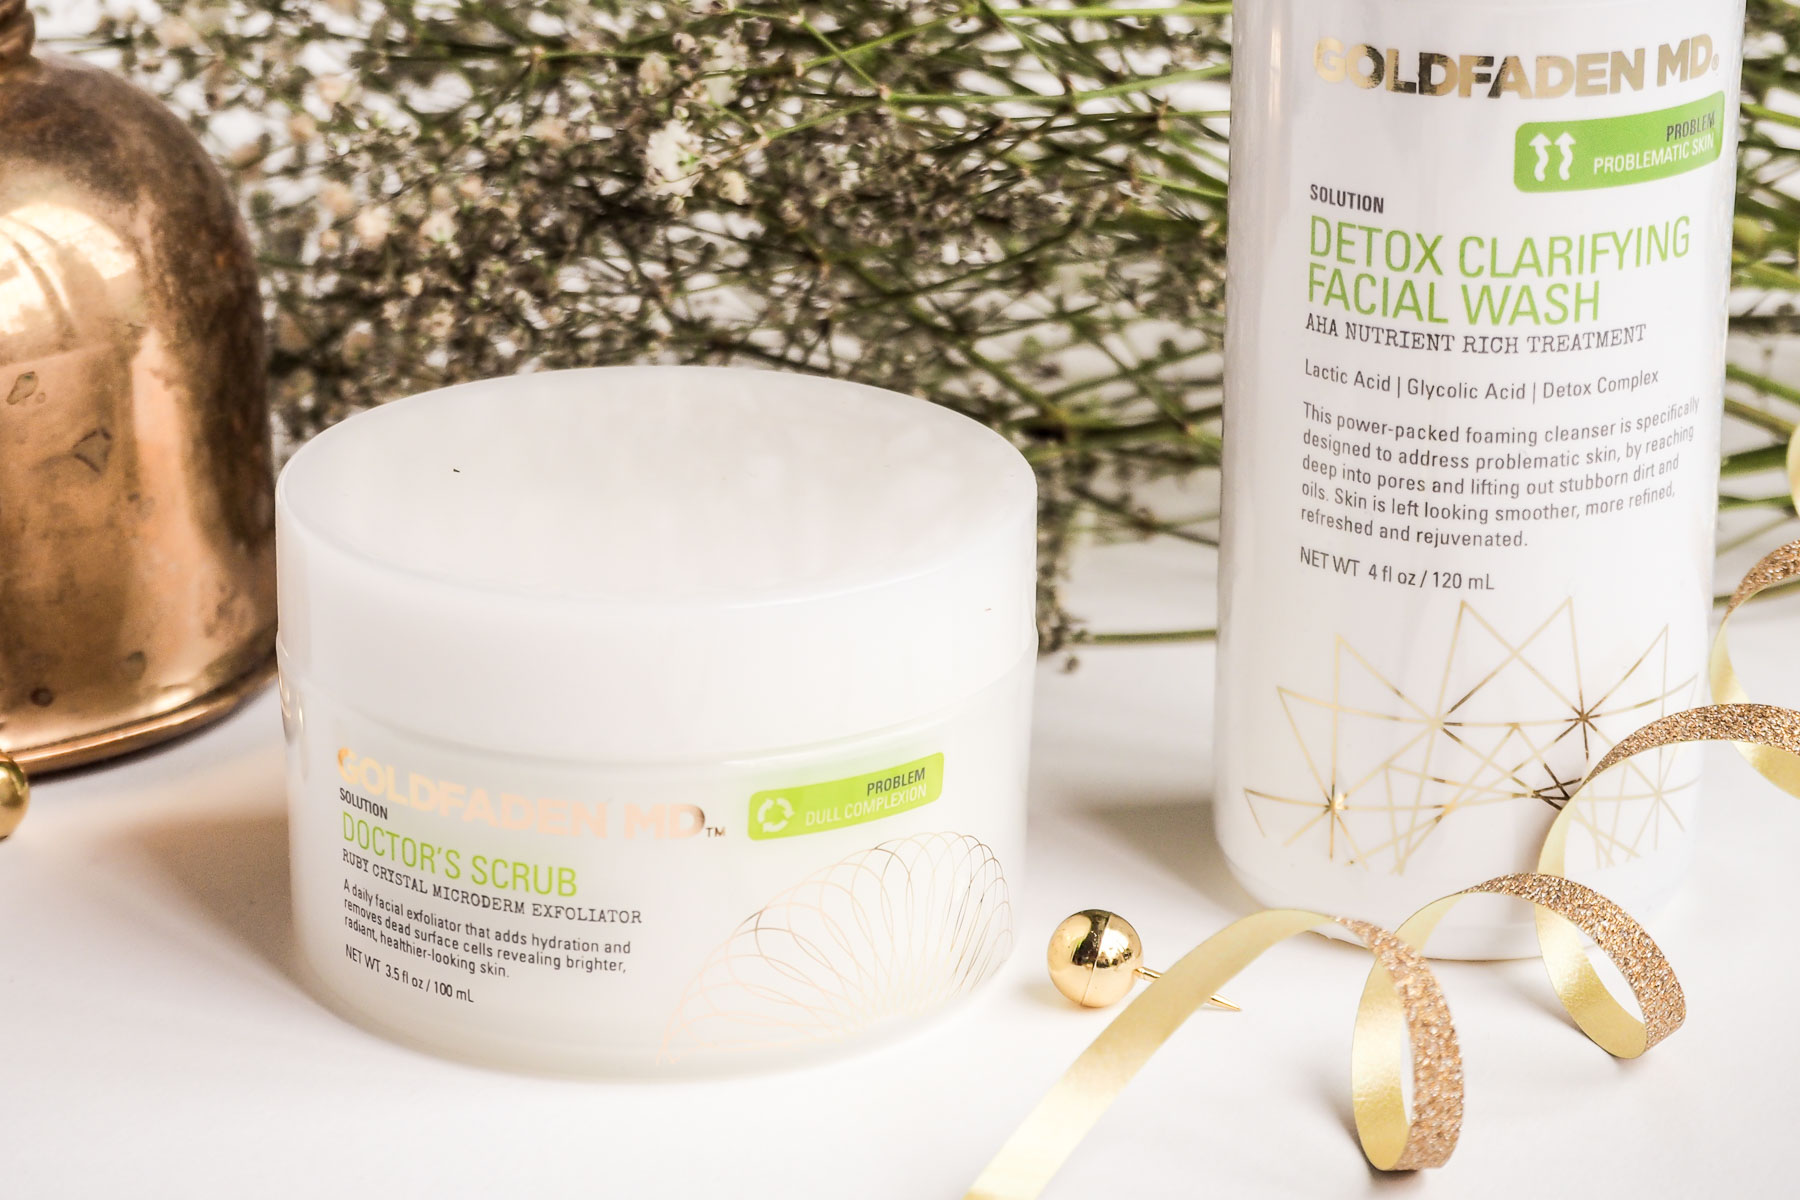 Beauty Review: Goldfaden MD's Detox Clarifying Facial Wash & Doctor's Scrub | Wolf & Stag